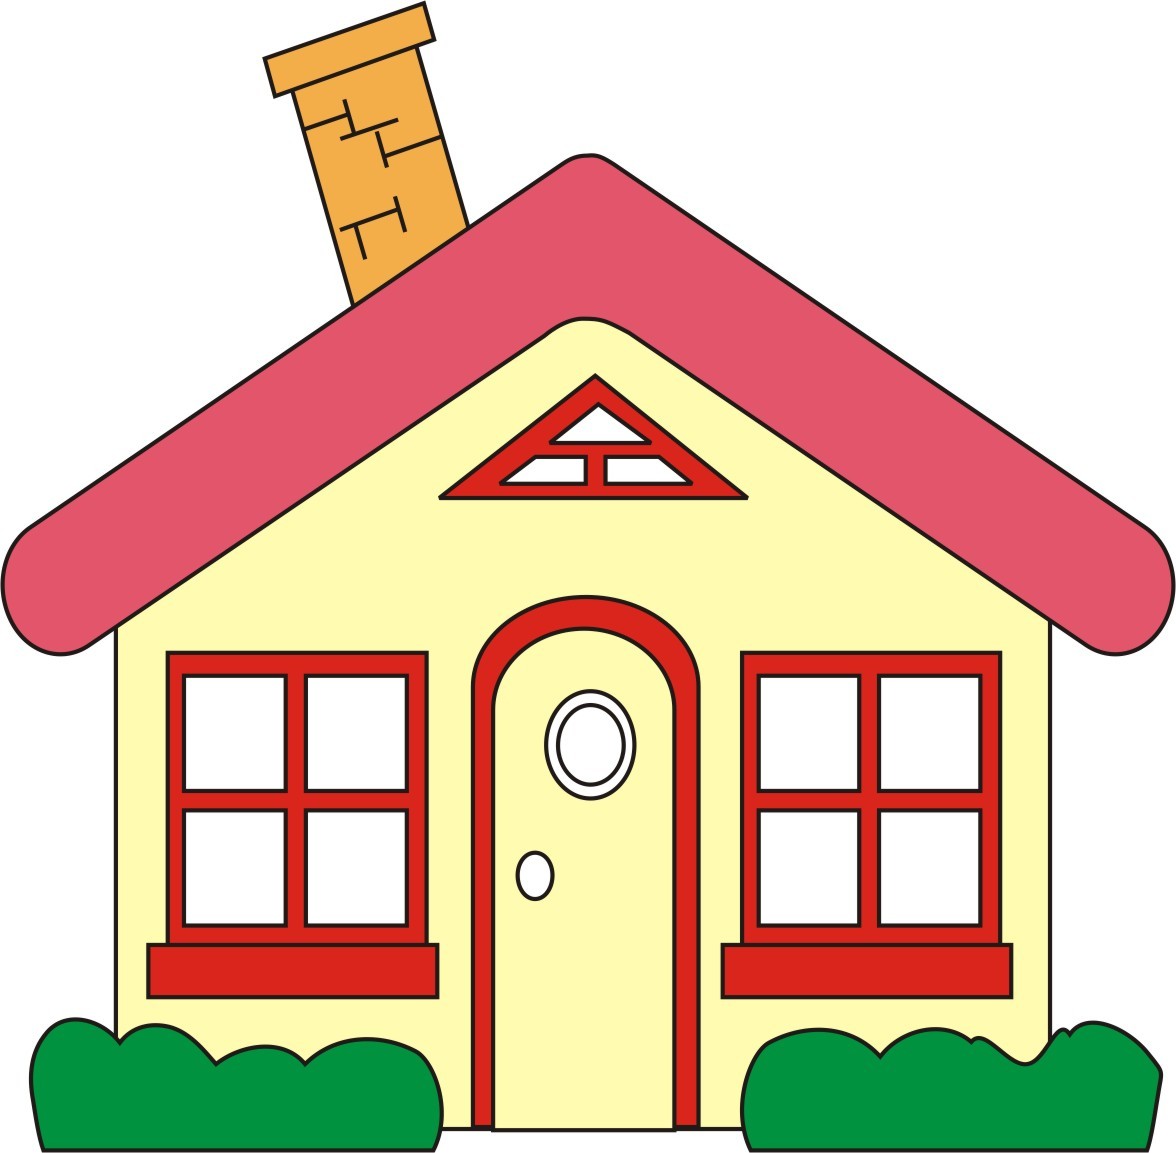 Home clipart clipart panda free clipart images for Casa amarilla musica